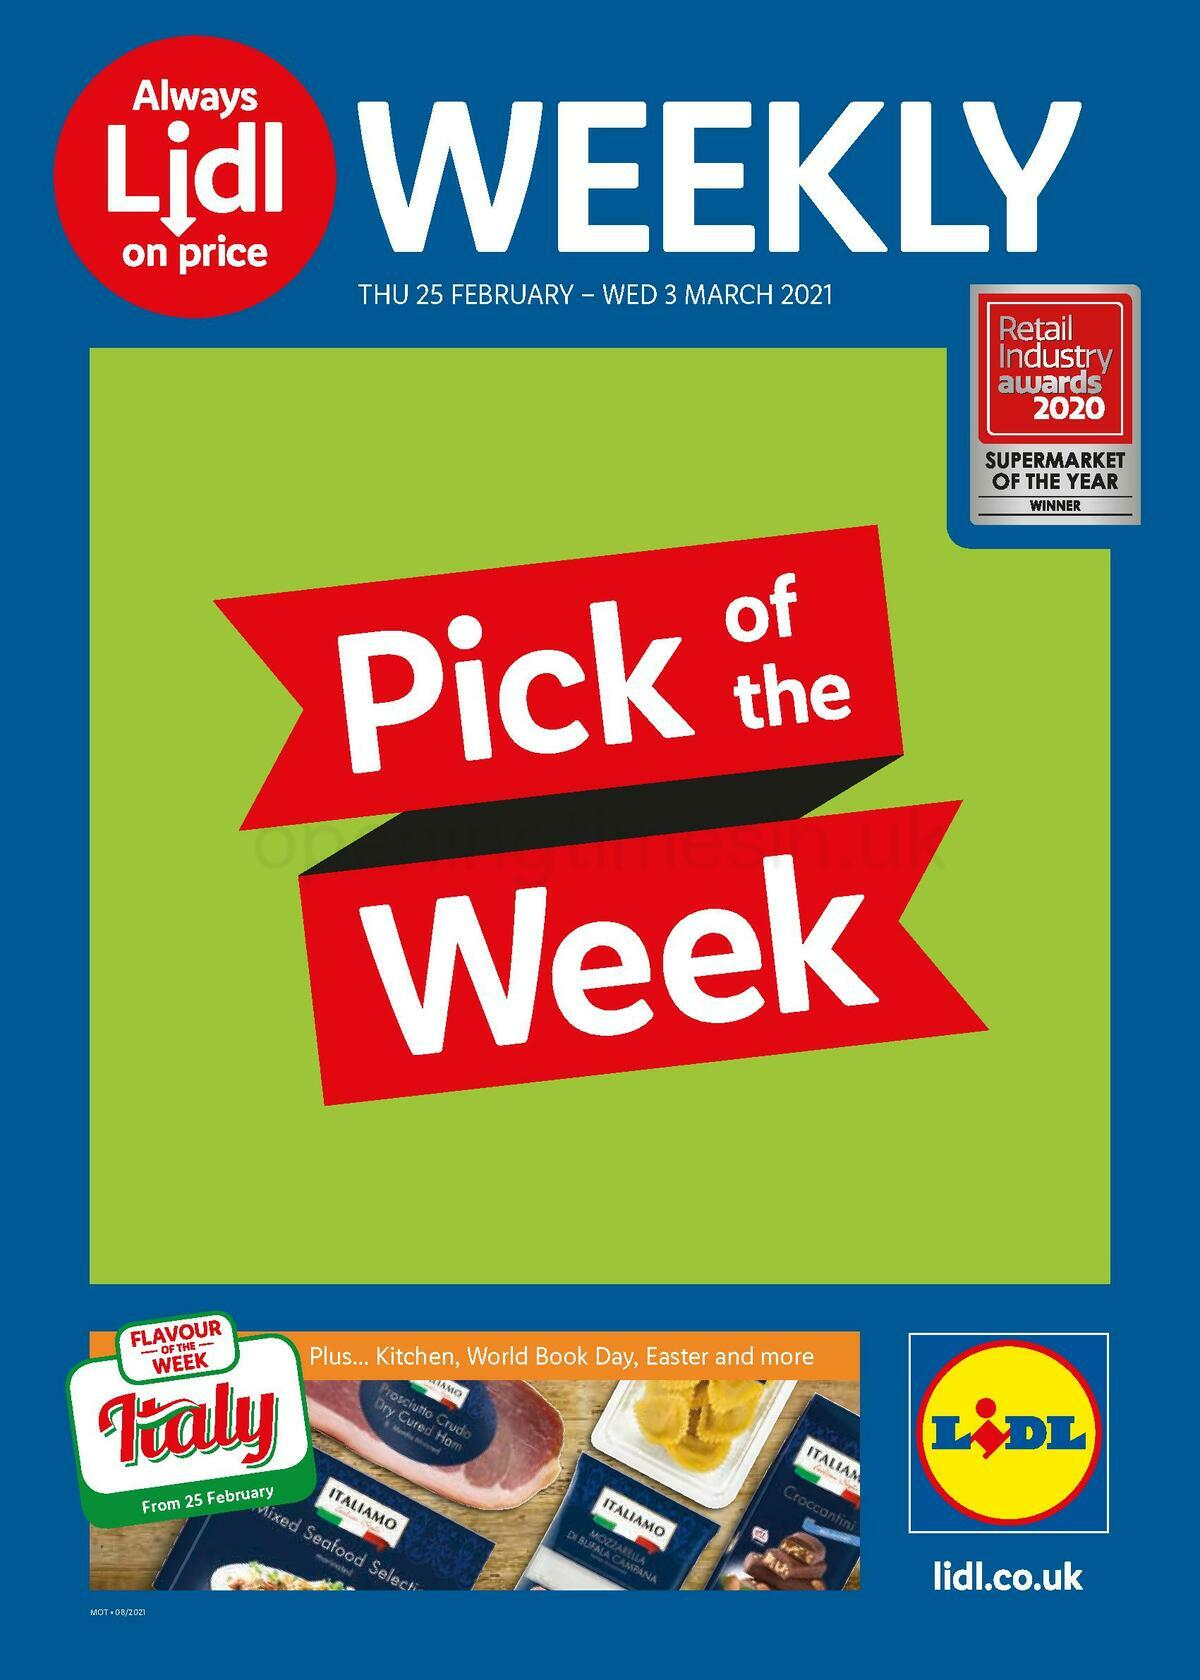 LIDL Offers from February 25